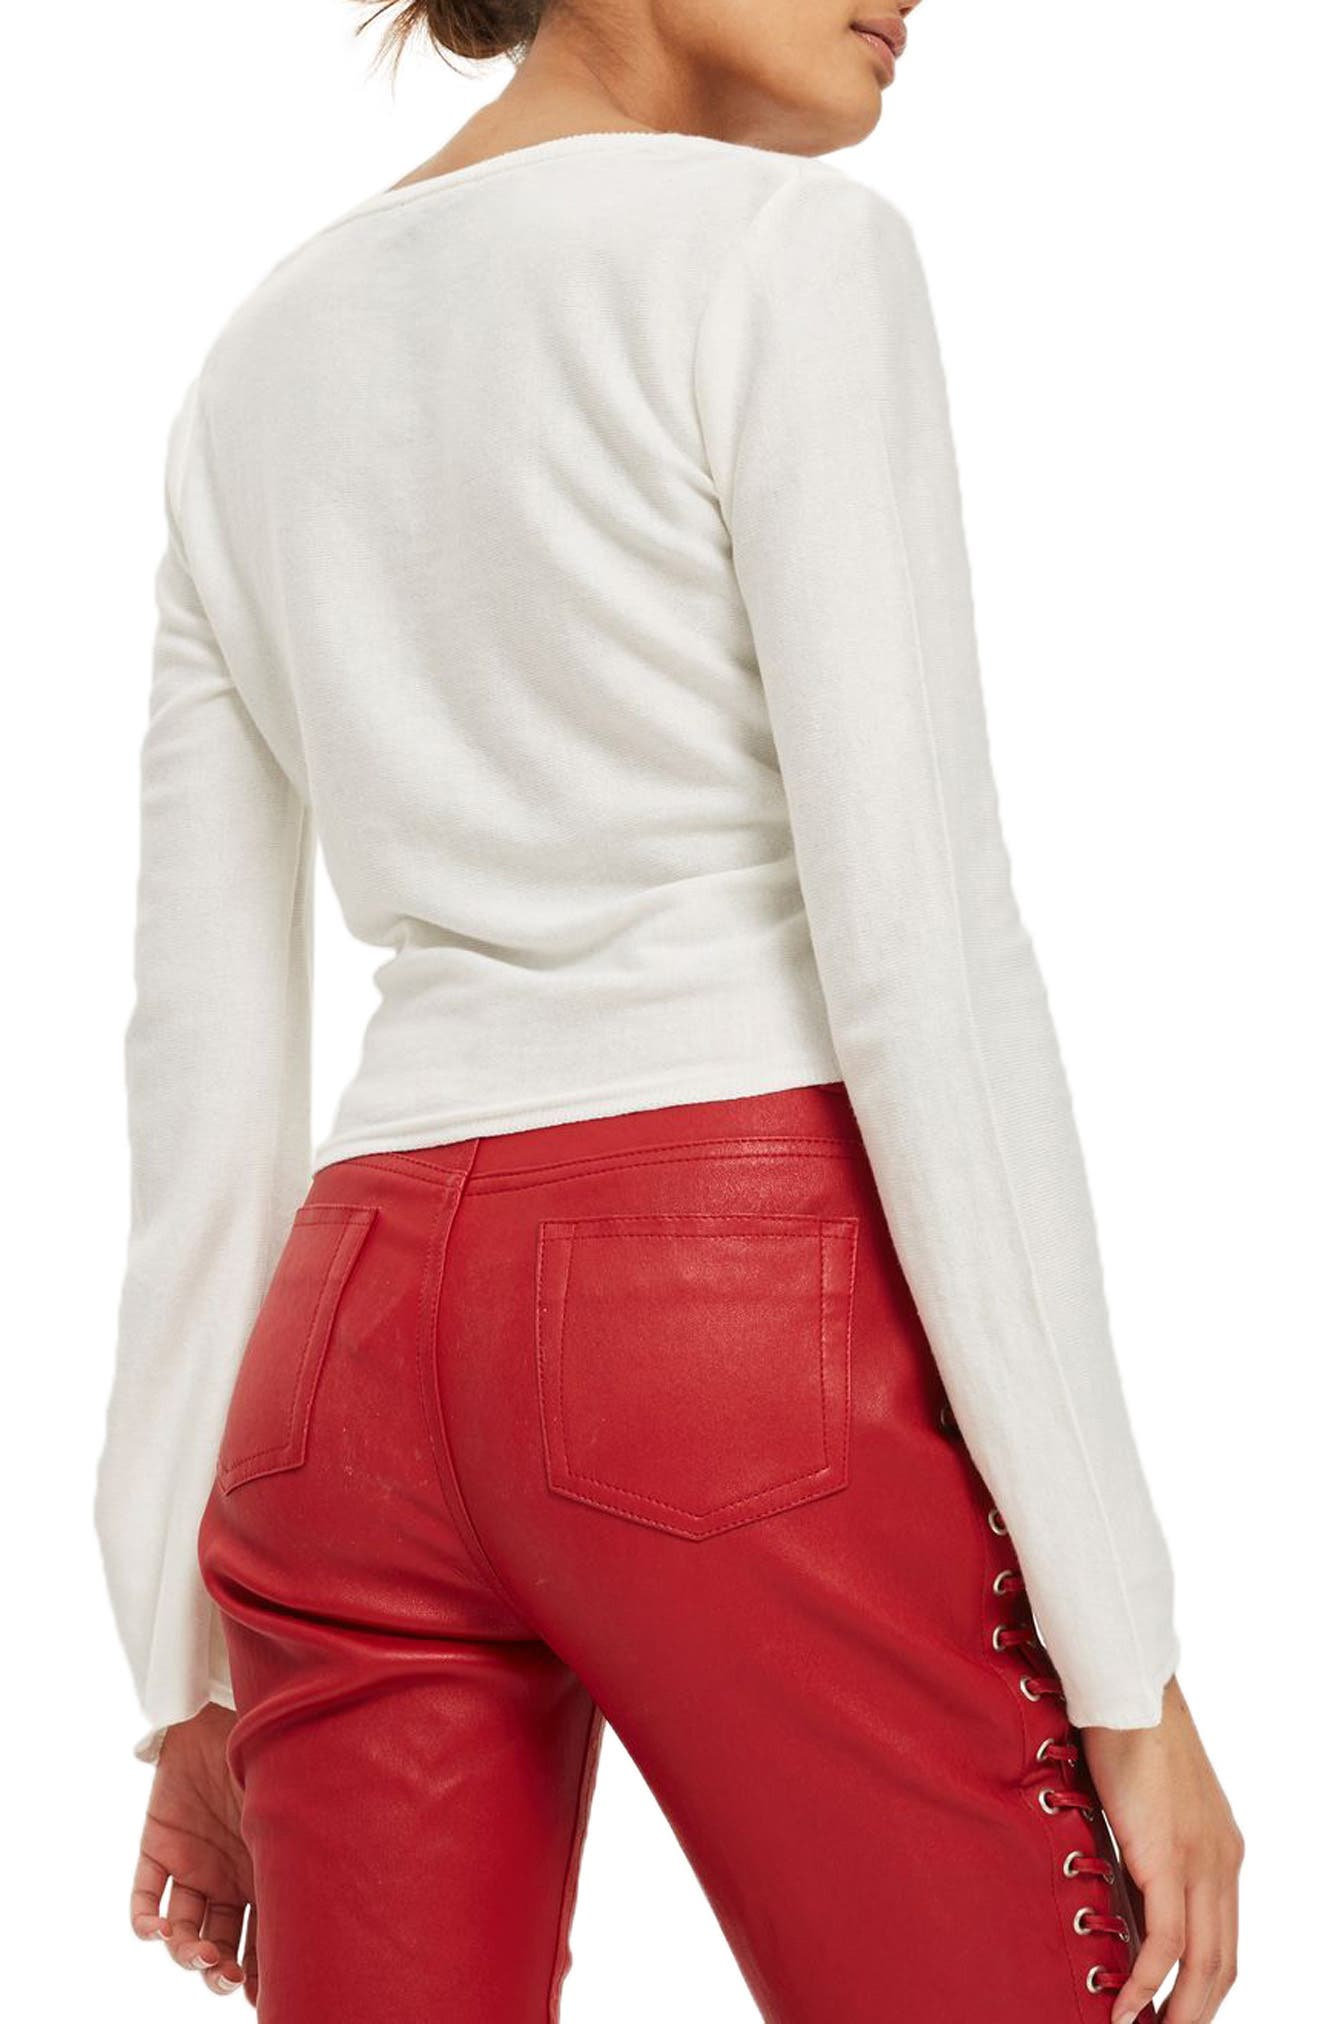 Knotted Wrap Top,                             Alternate thumbnail 2, color,                             900